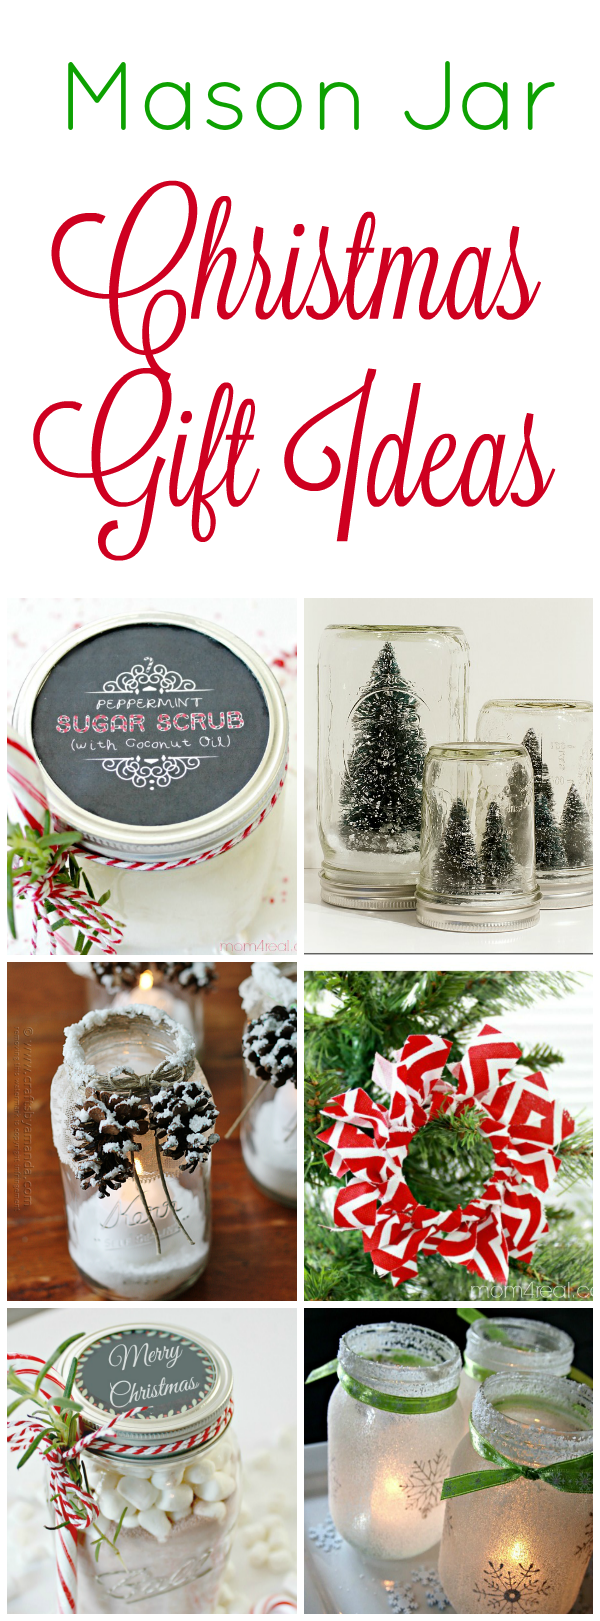 14 Mason Jar Christmas Gift Ideas - Mom 4 Real